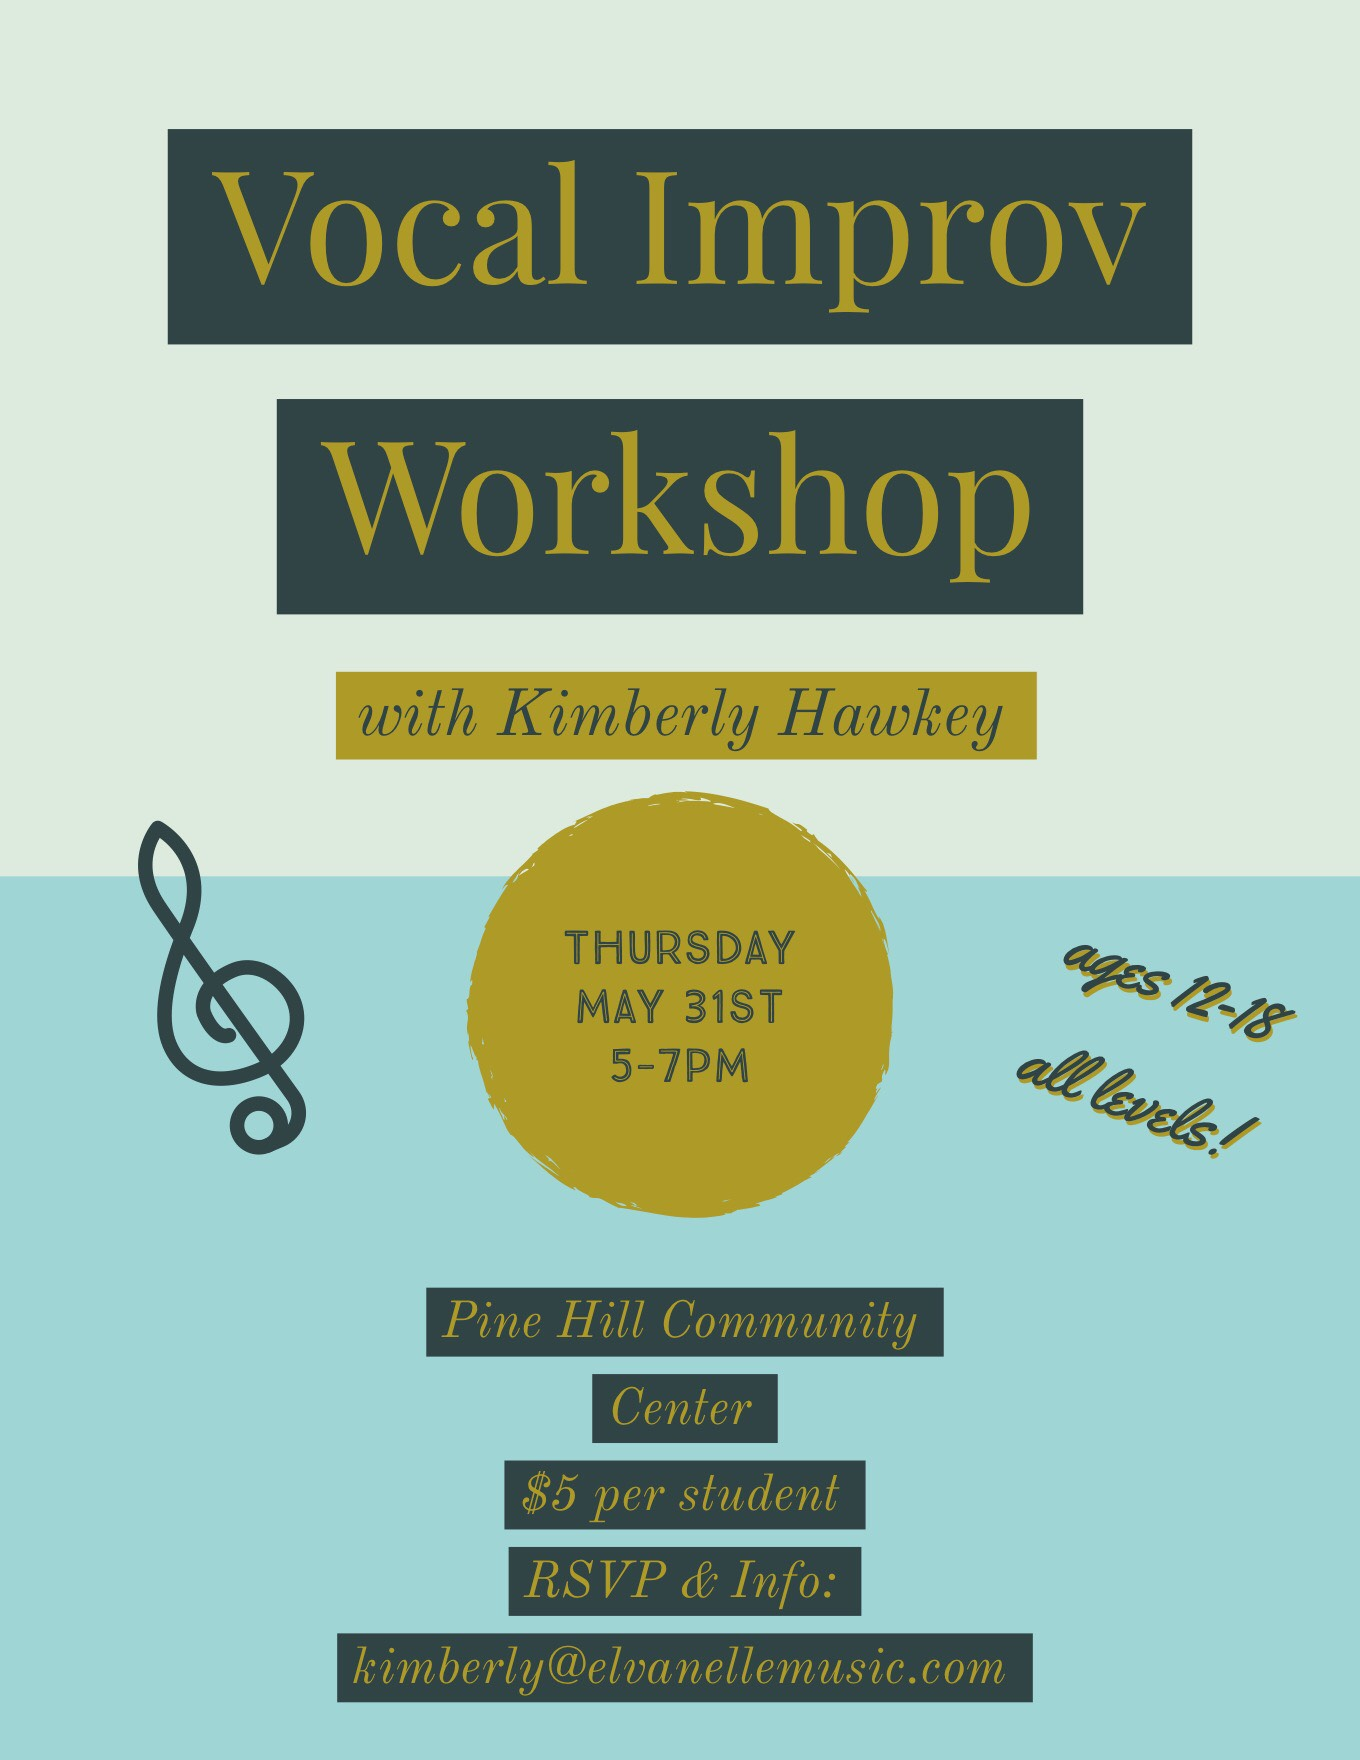 5/31 - A new workshop at the Pine Hill Community Center! Open to all young musicians who want to learn how to create a fully-improvised group song using rhythm, harmony and melody!